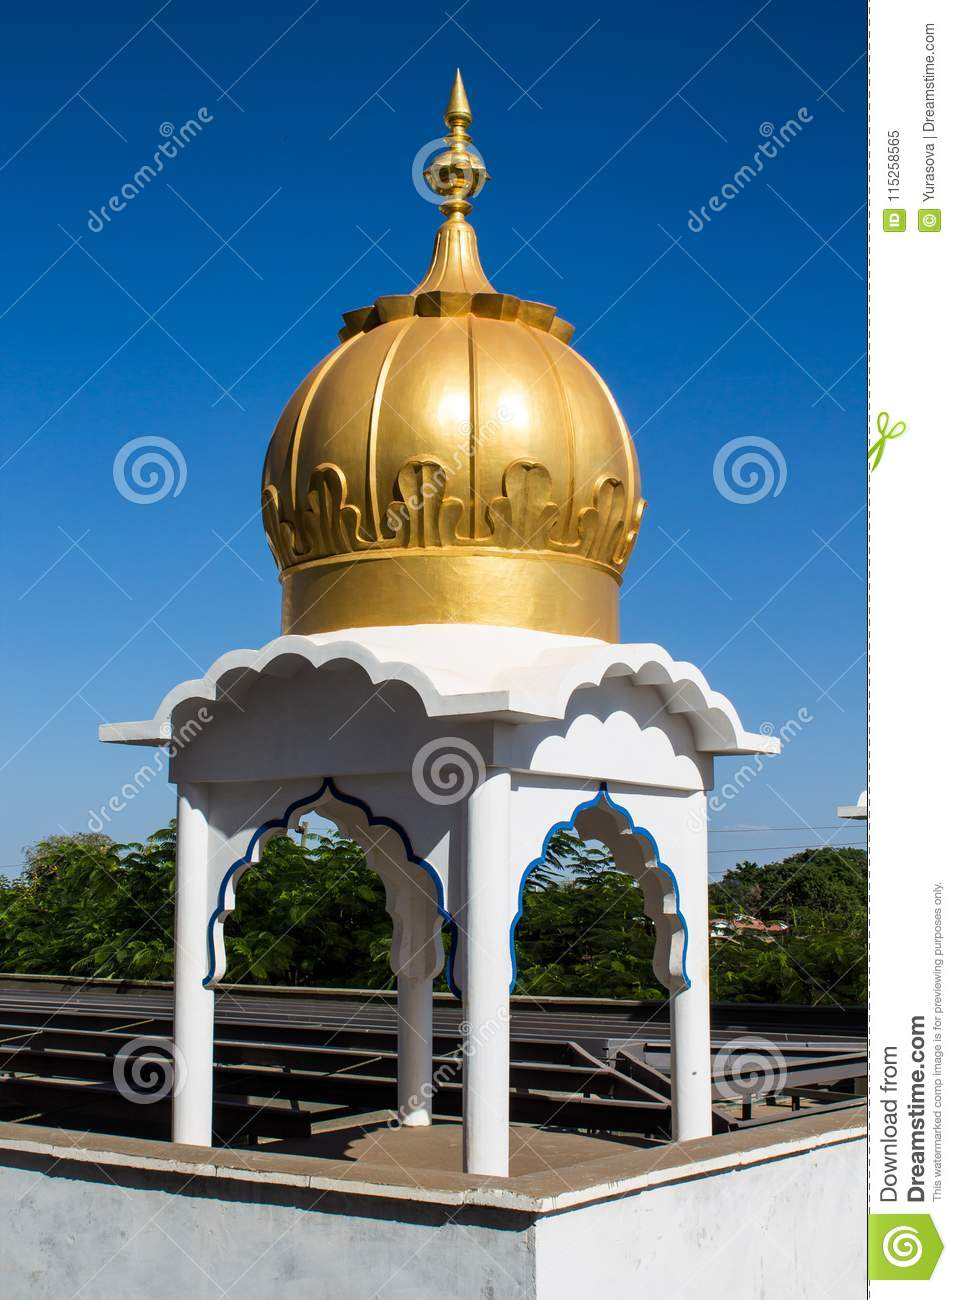 Sikh temple golden dome stock image. Image of building.